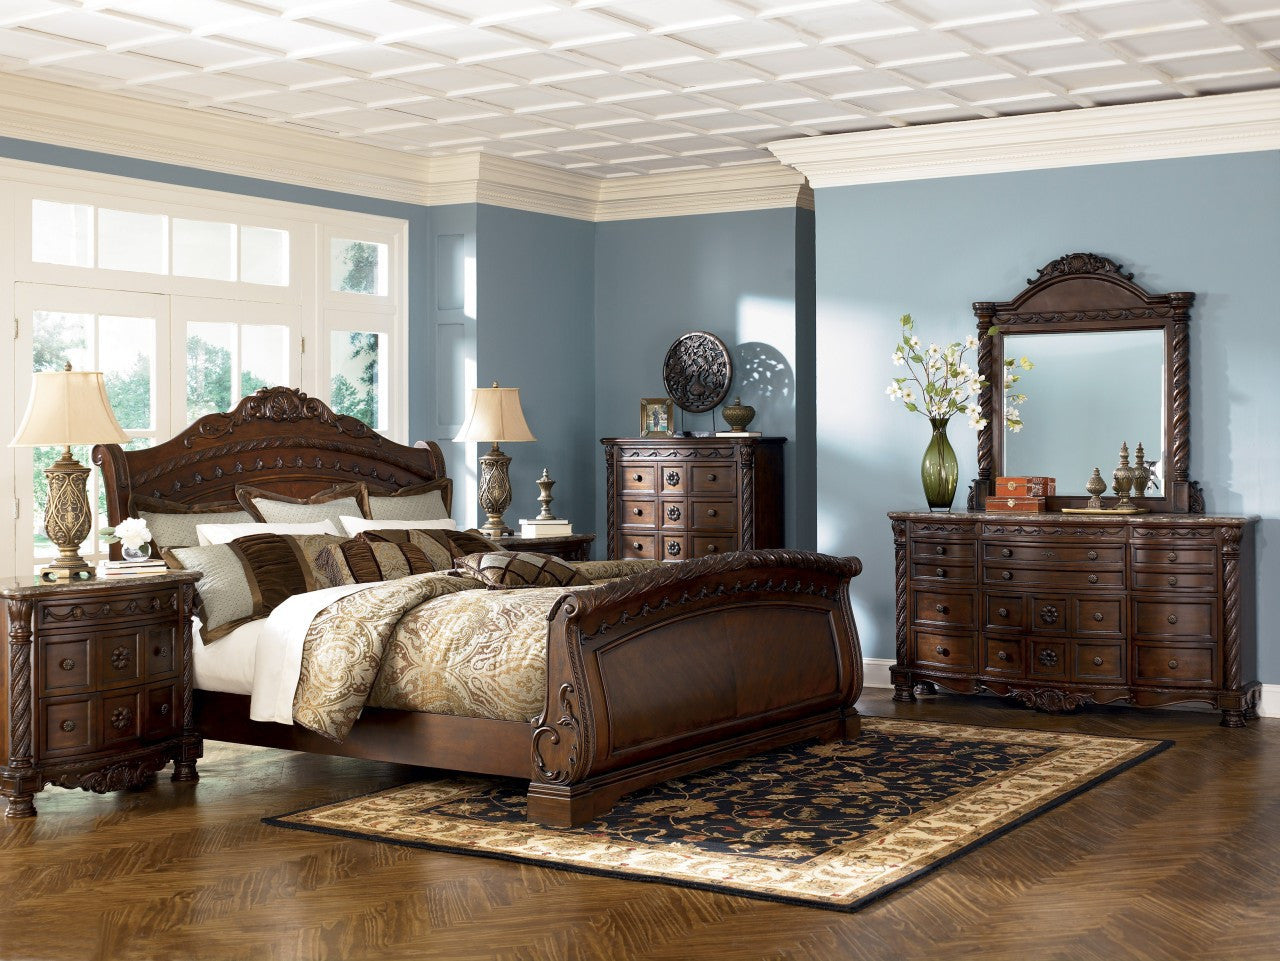 King Bedroom Sets Ashley Furniture north shore sleigh king bedroom setashley furniture | my